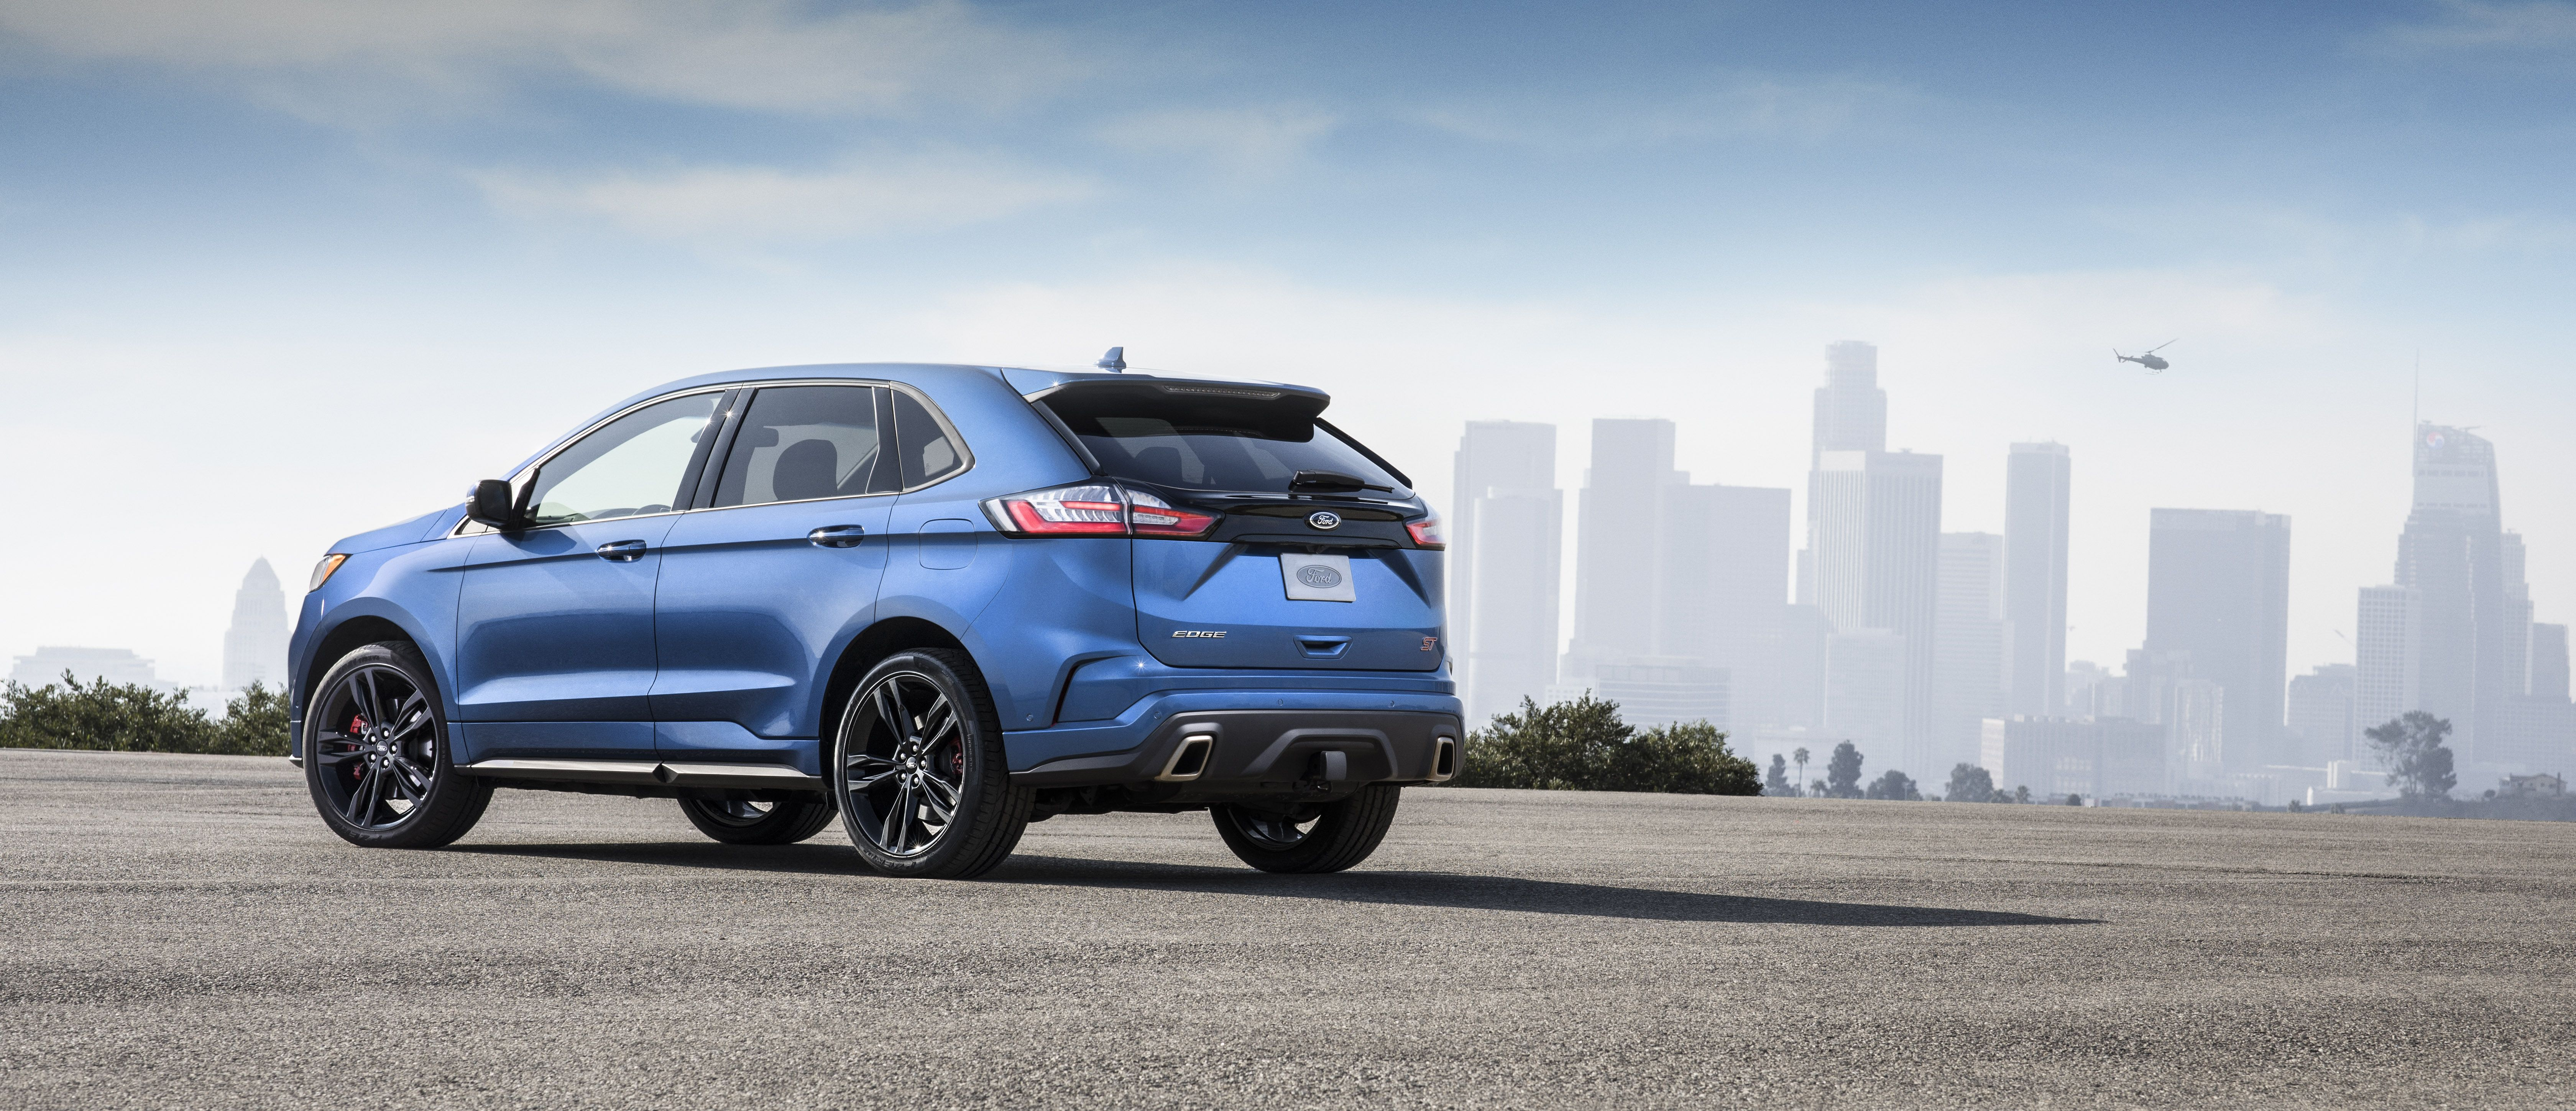 2019 Ford Edge St First Performance Suv Ford Edge 2019 Ford Suv